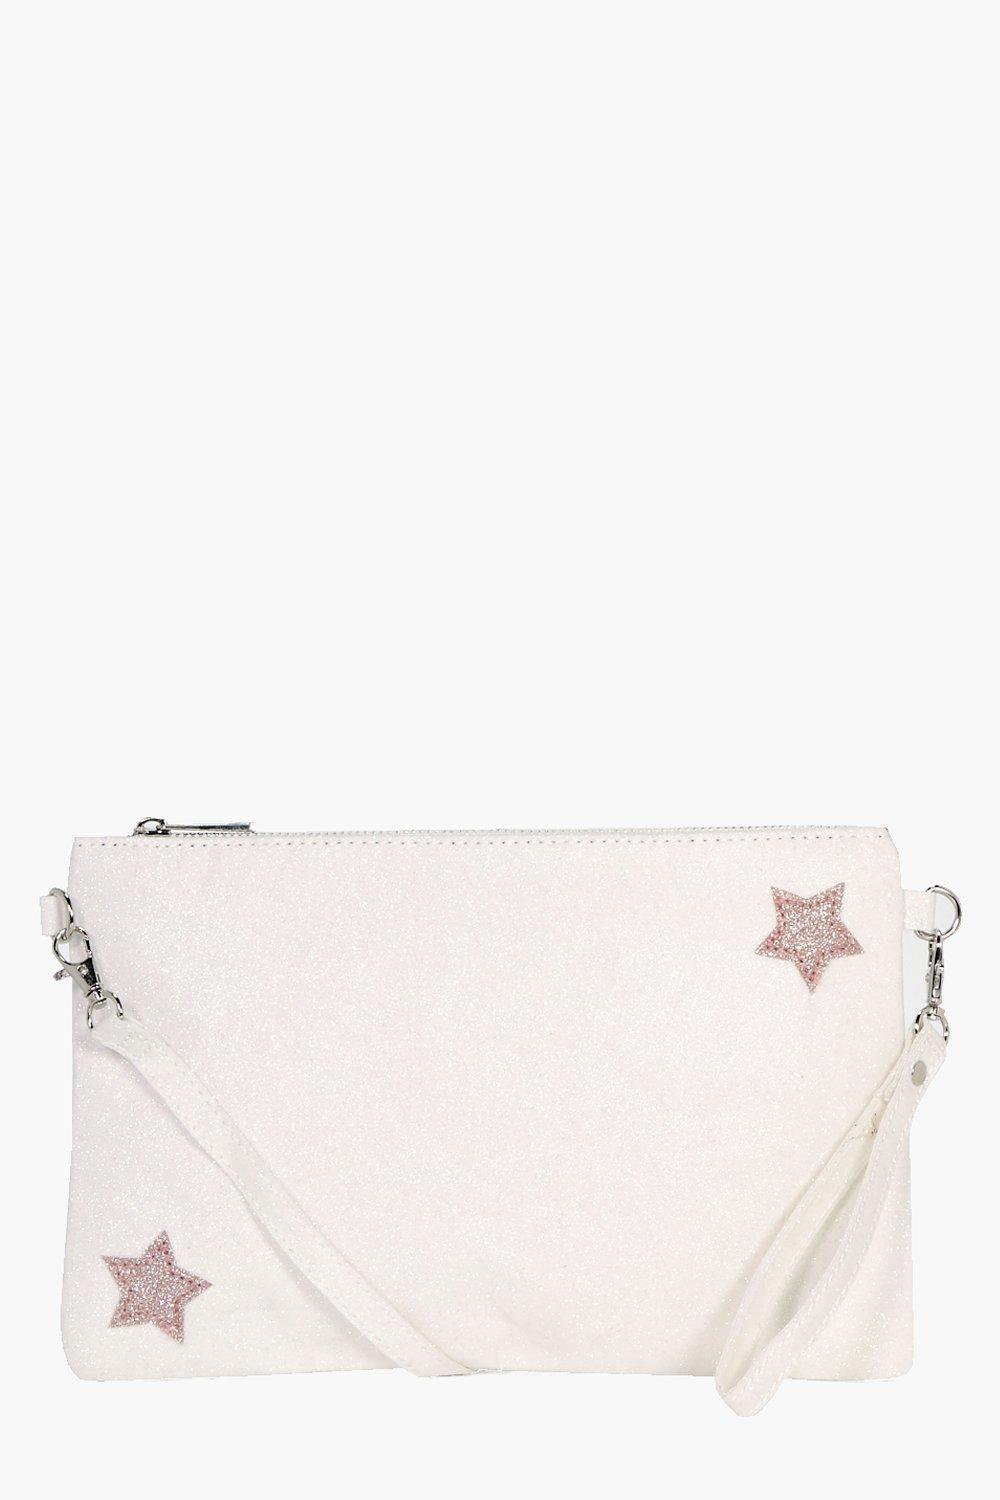 Glitter Star Clutch - white - Hannah Glitter Star